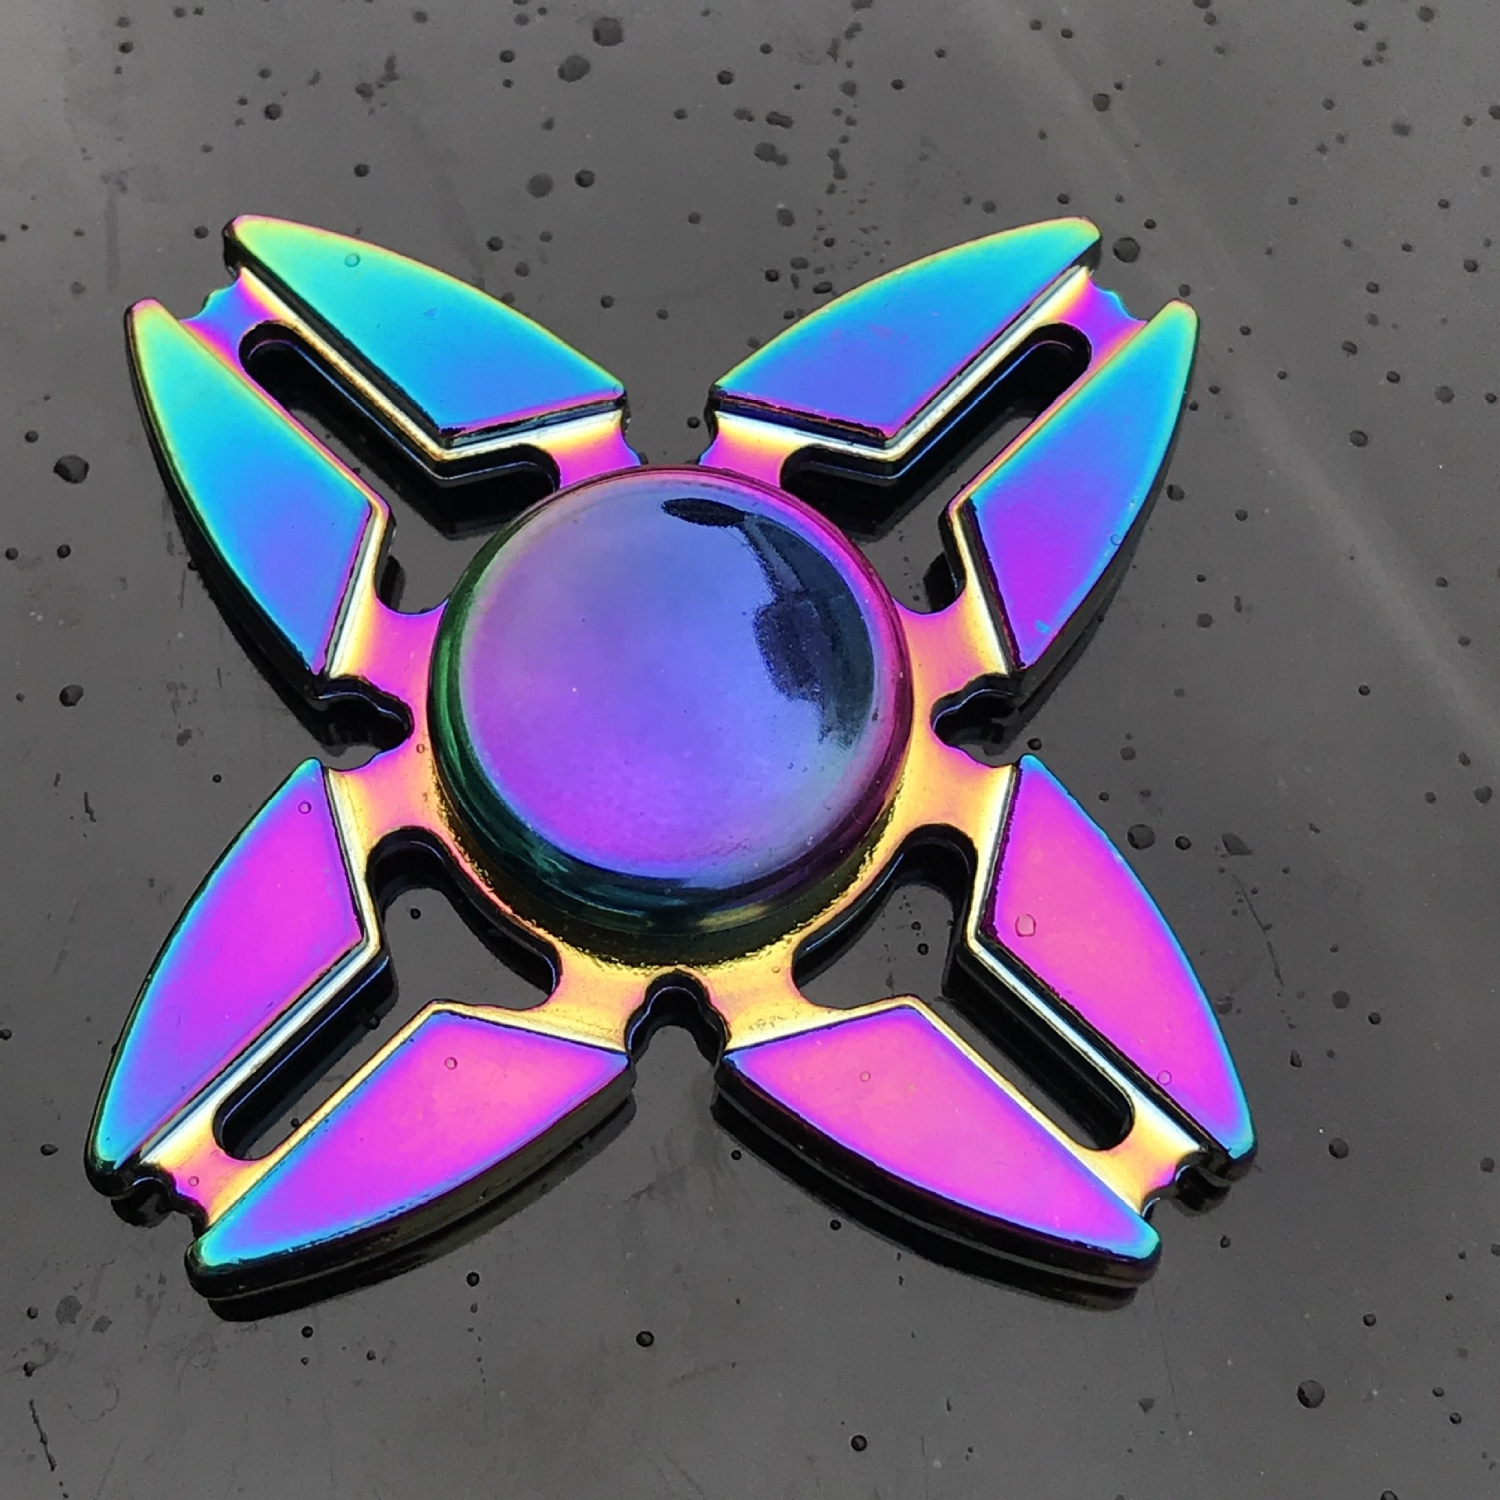 Fidget Spinner Office Anxiety Relief Stress Finger Spiner Gyro Flower Hand Spinner Metal Kinetic Toys For Children With Autism